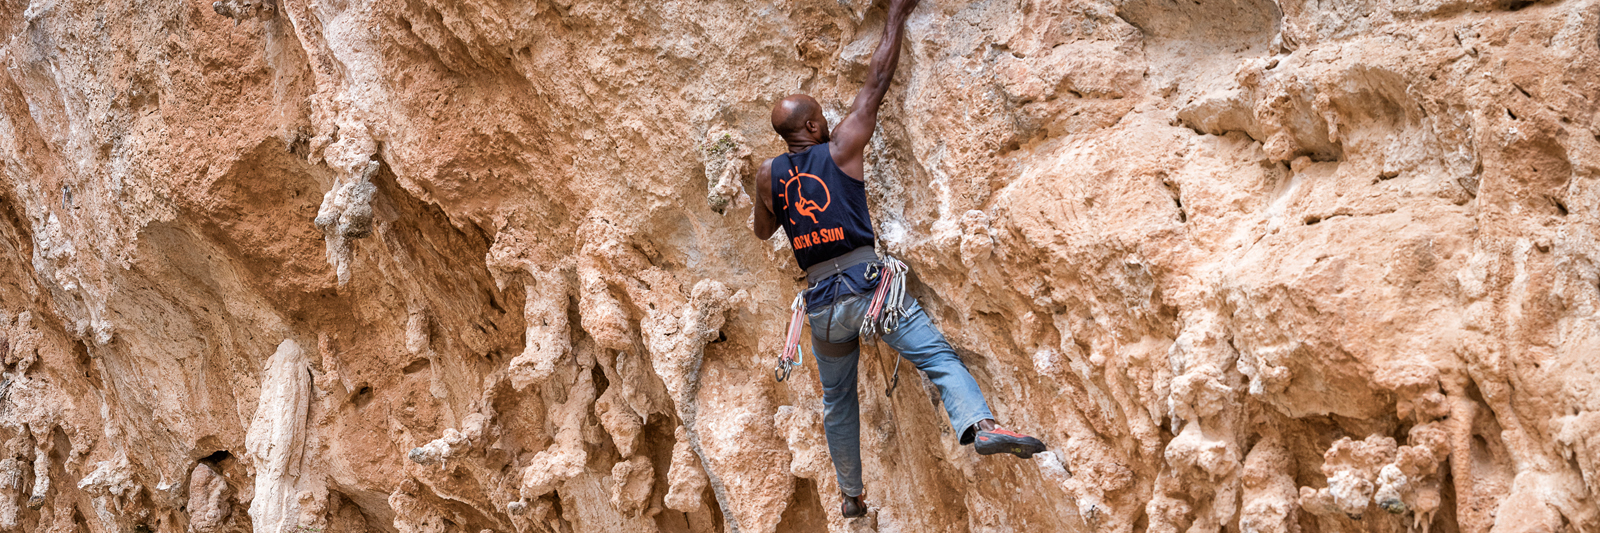 Rock and Sun Rock Climbing Holidays Rock Climbing Courses Homepage Background Image1 1600x533